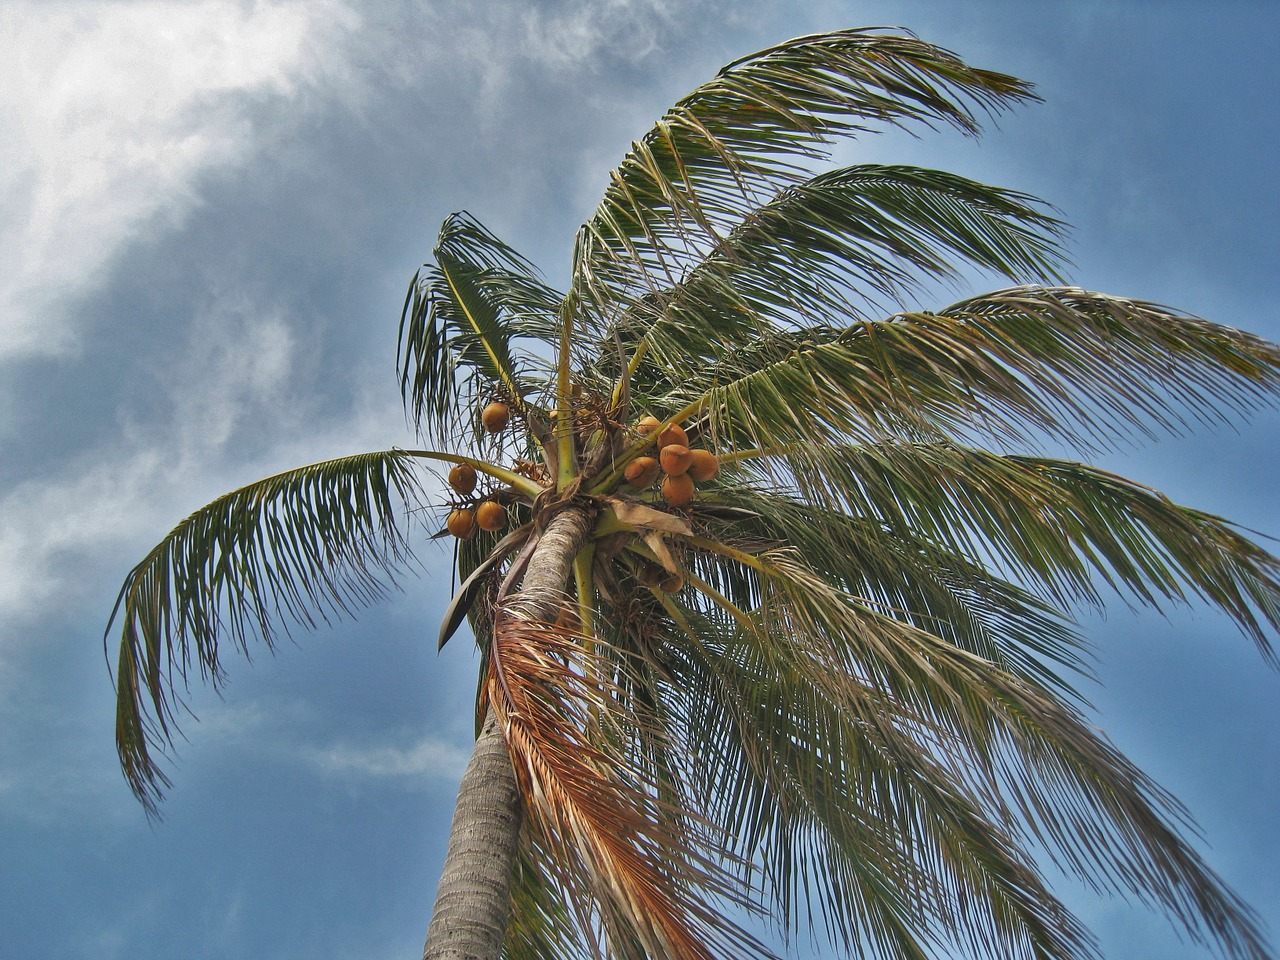 palm-tree-in-the-storm-1088921_1280